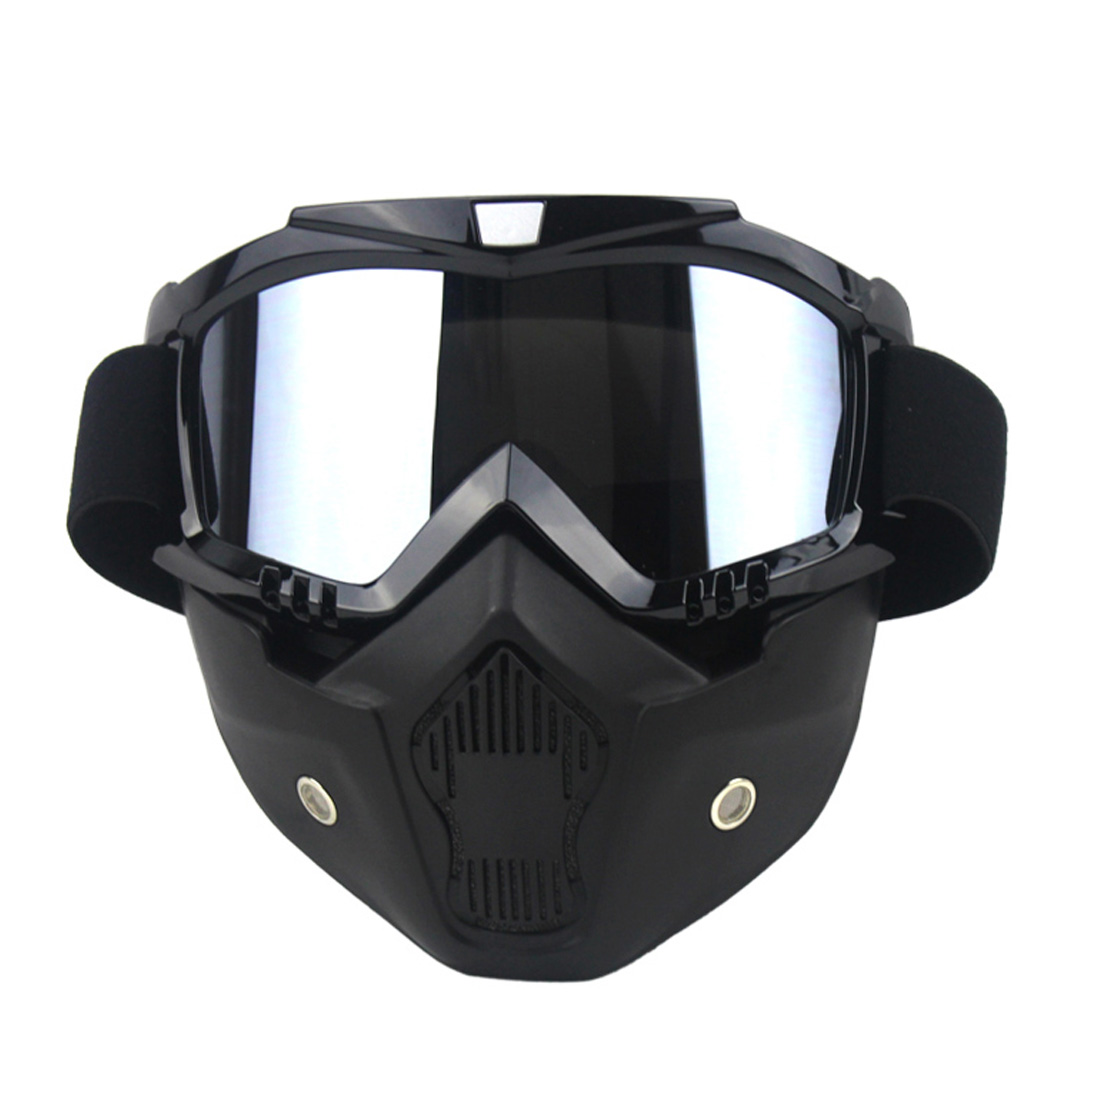 CAR-partment Ski Bike Motorcycle Face Mask Goggles Motocross Motorbike Motor Open Face Detachable Goggle Helmets Vintage Glasses